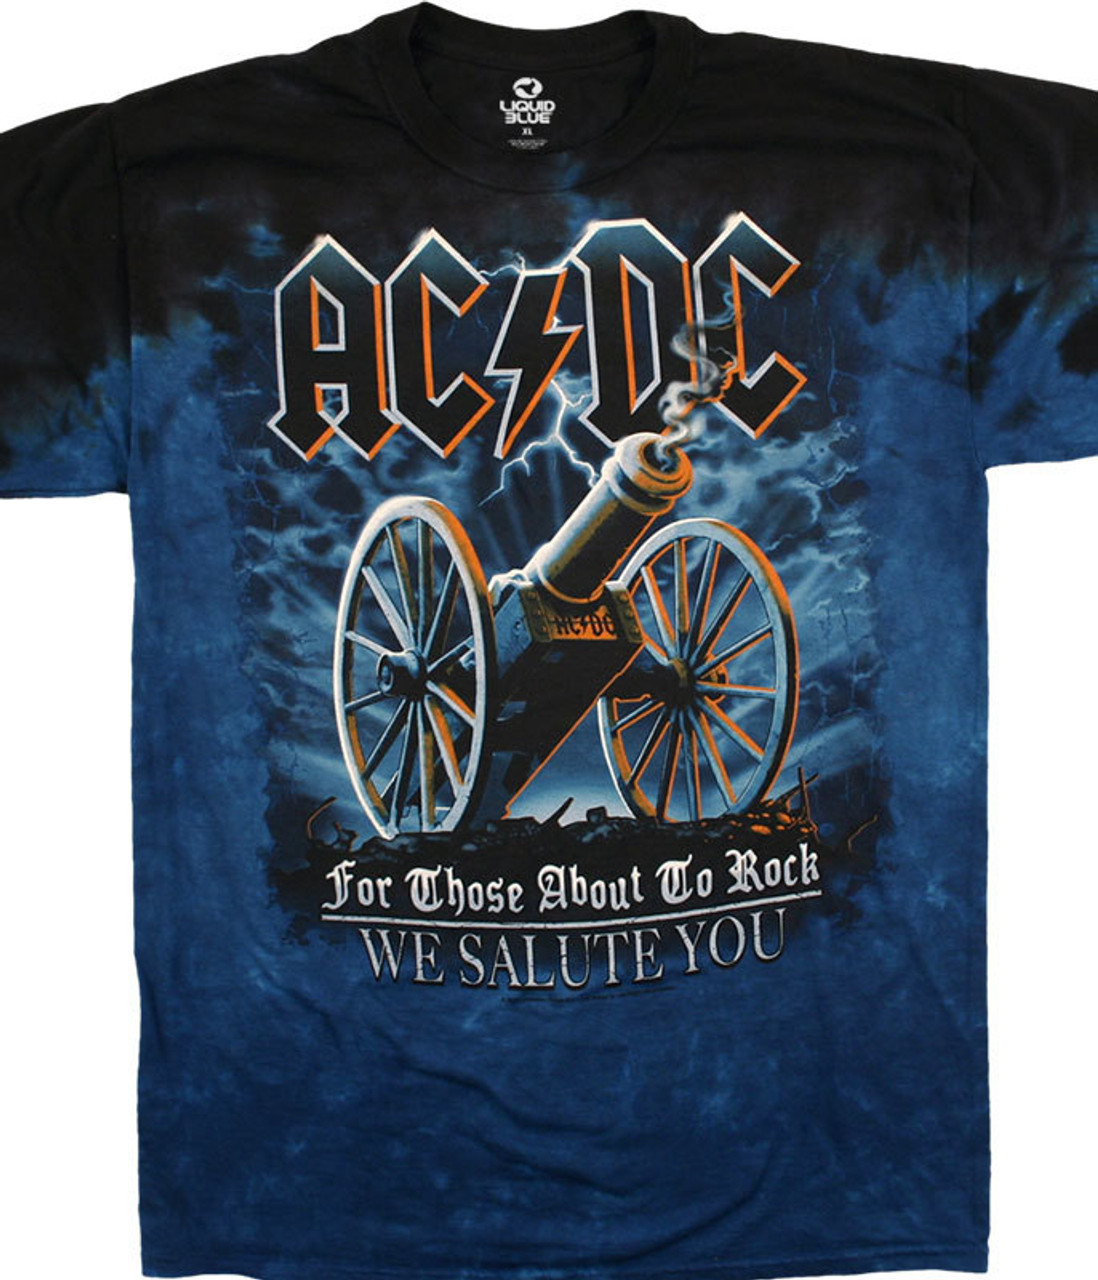 **(OFFICIALLY-LICENSED-A.C./D.C.FOR-THOSE-ABOUT-TO-ROCK/WE-SALUTE-YOU & 21-GUN-SALUTE,OFFICIAL-A.C./D.C. NICE-CUSTOM-GRAPHIC-PRINTED/PREMIUM-CONCERT-TEE-SHIRTS)**